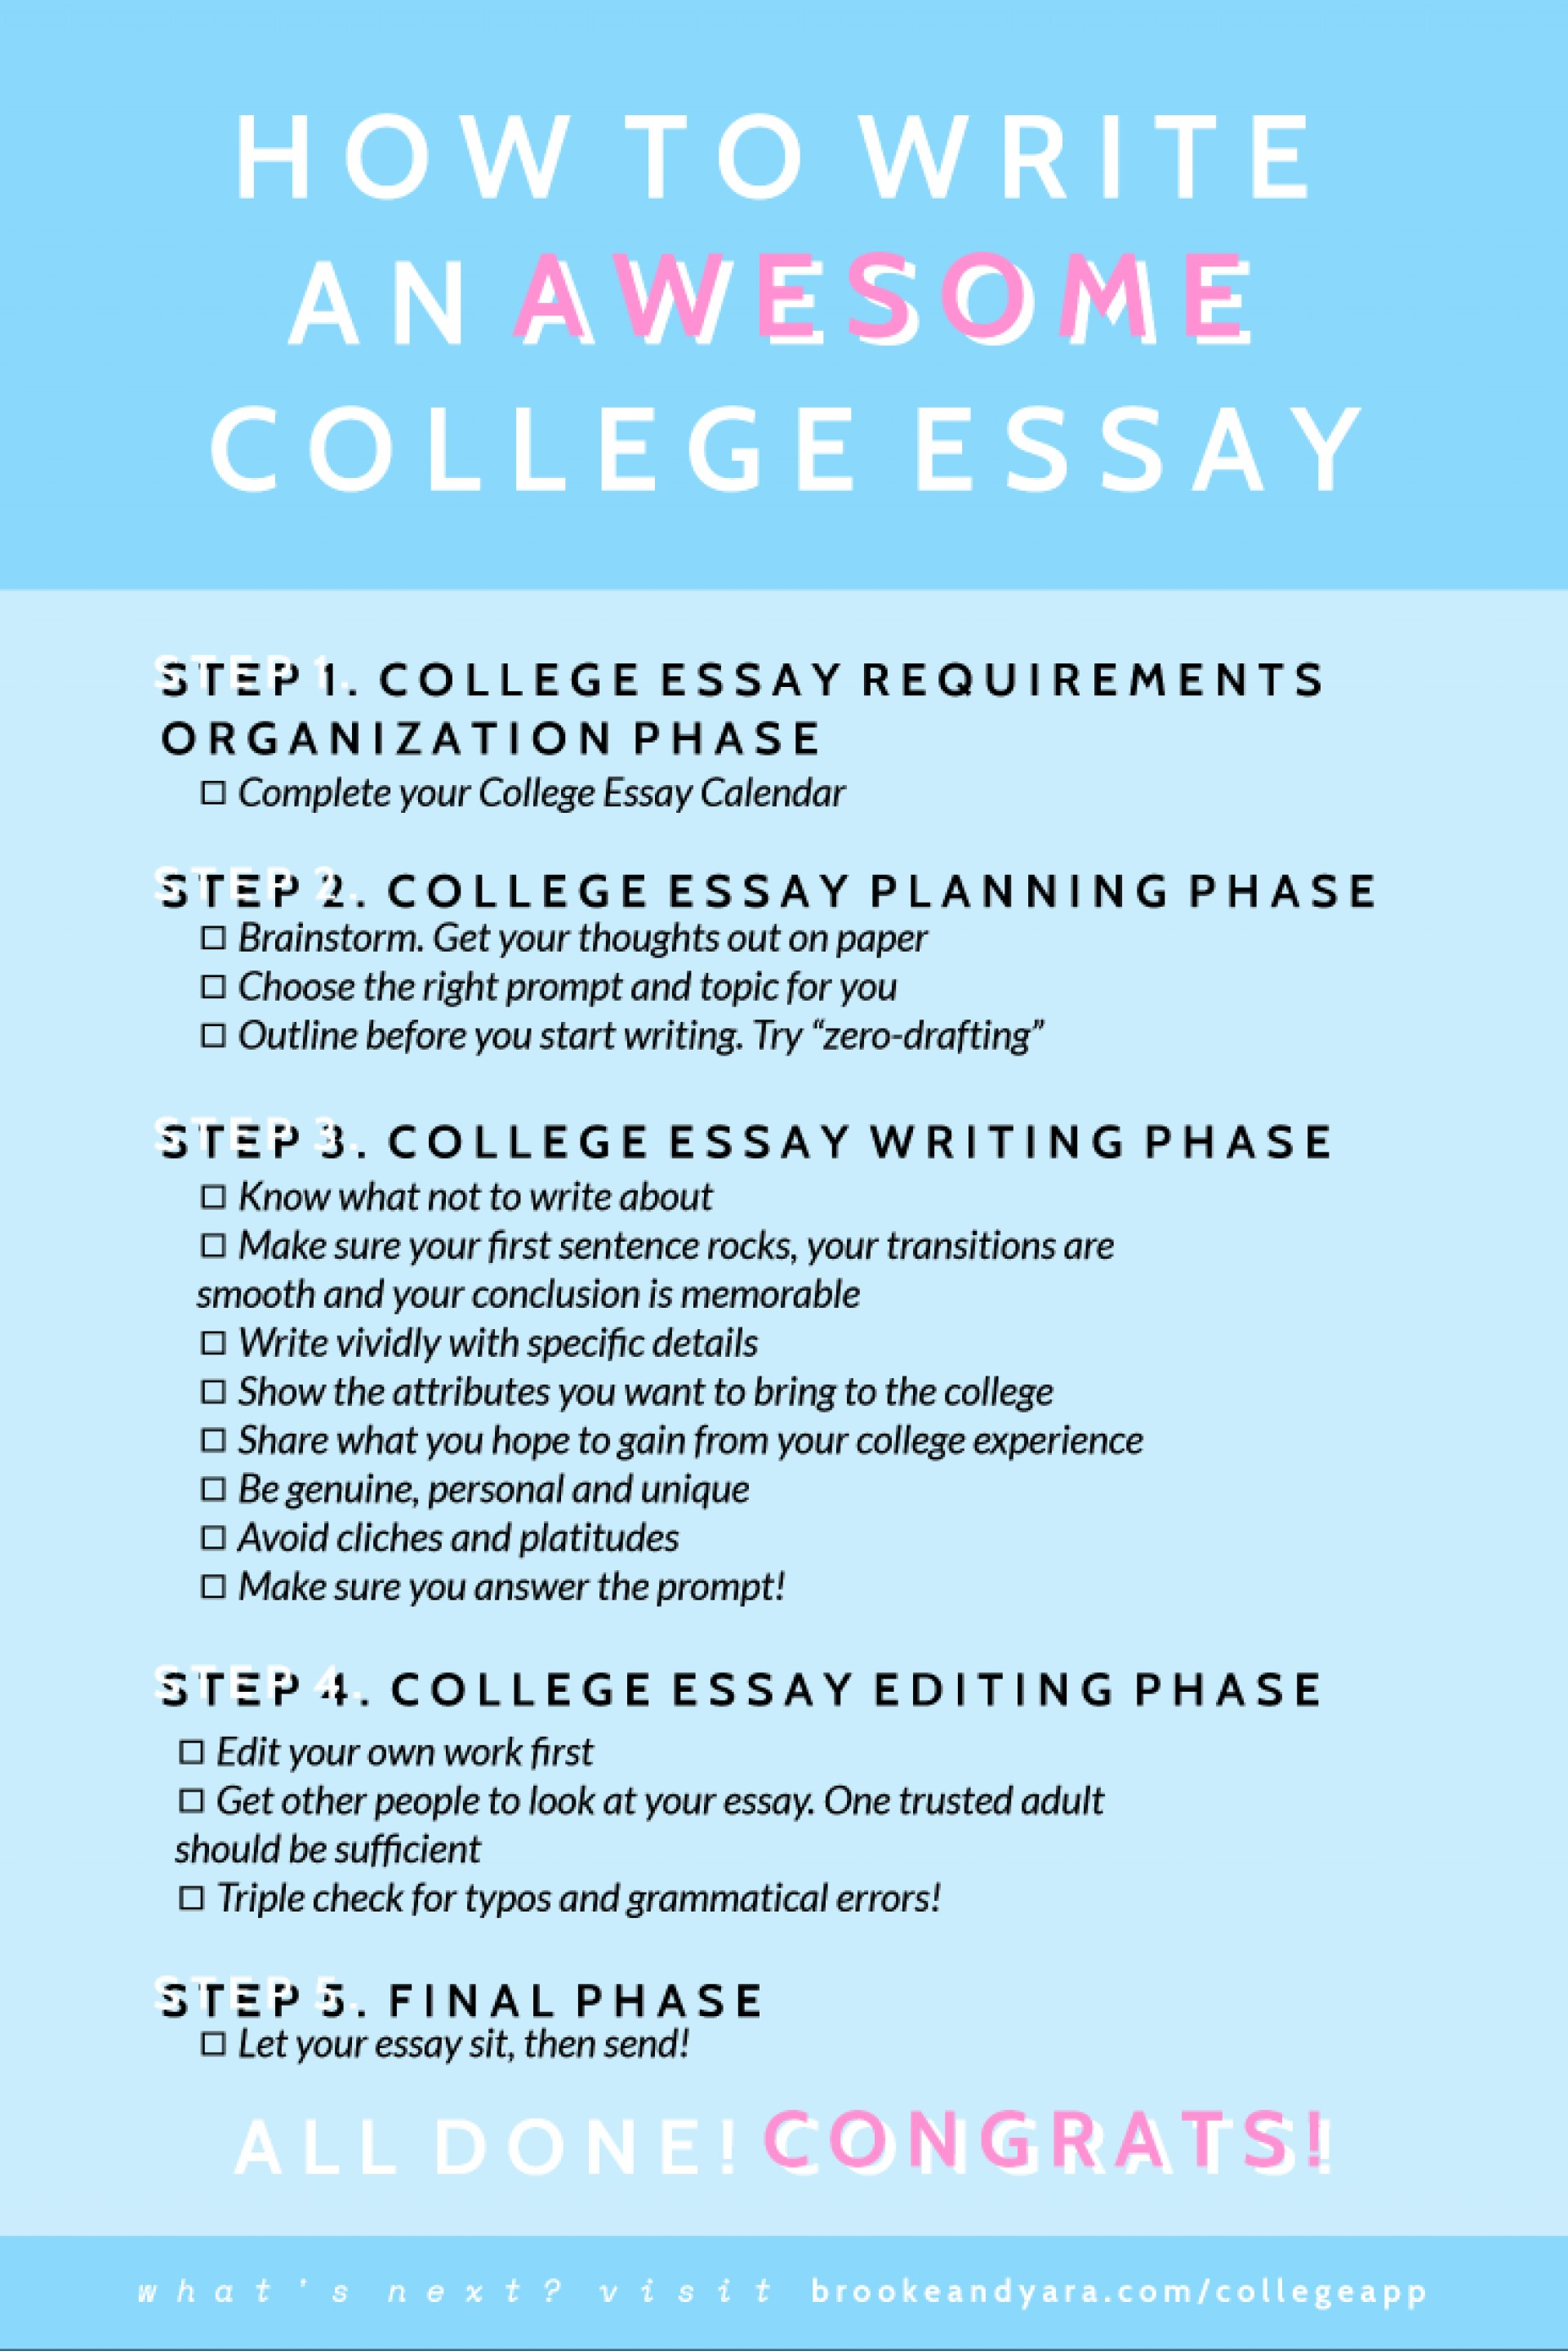 012 Best Website To Read Research Papers Paper 3028301476 Online Essay Editing Outstanding 1920